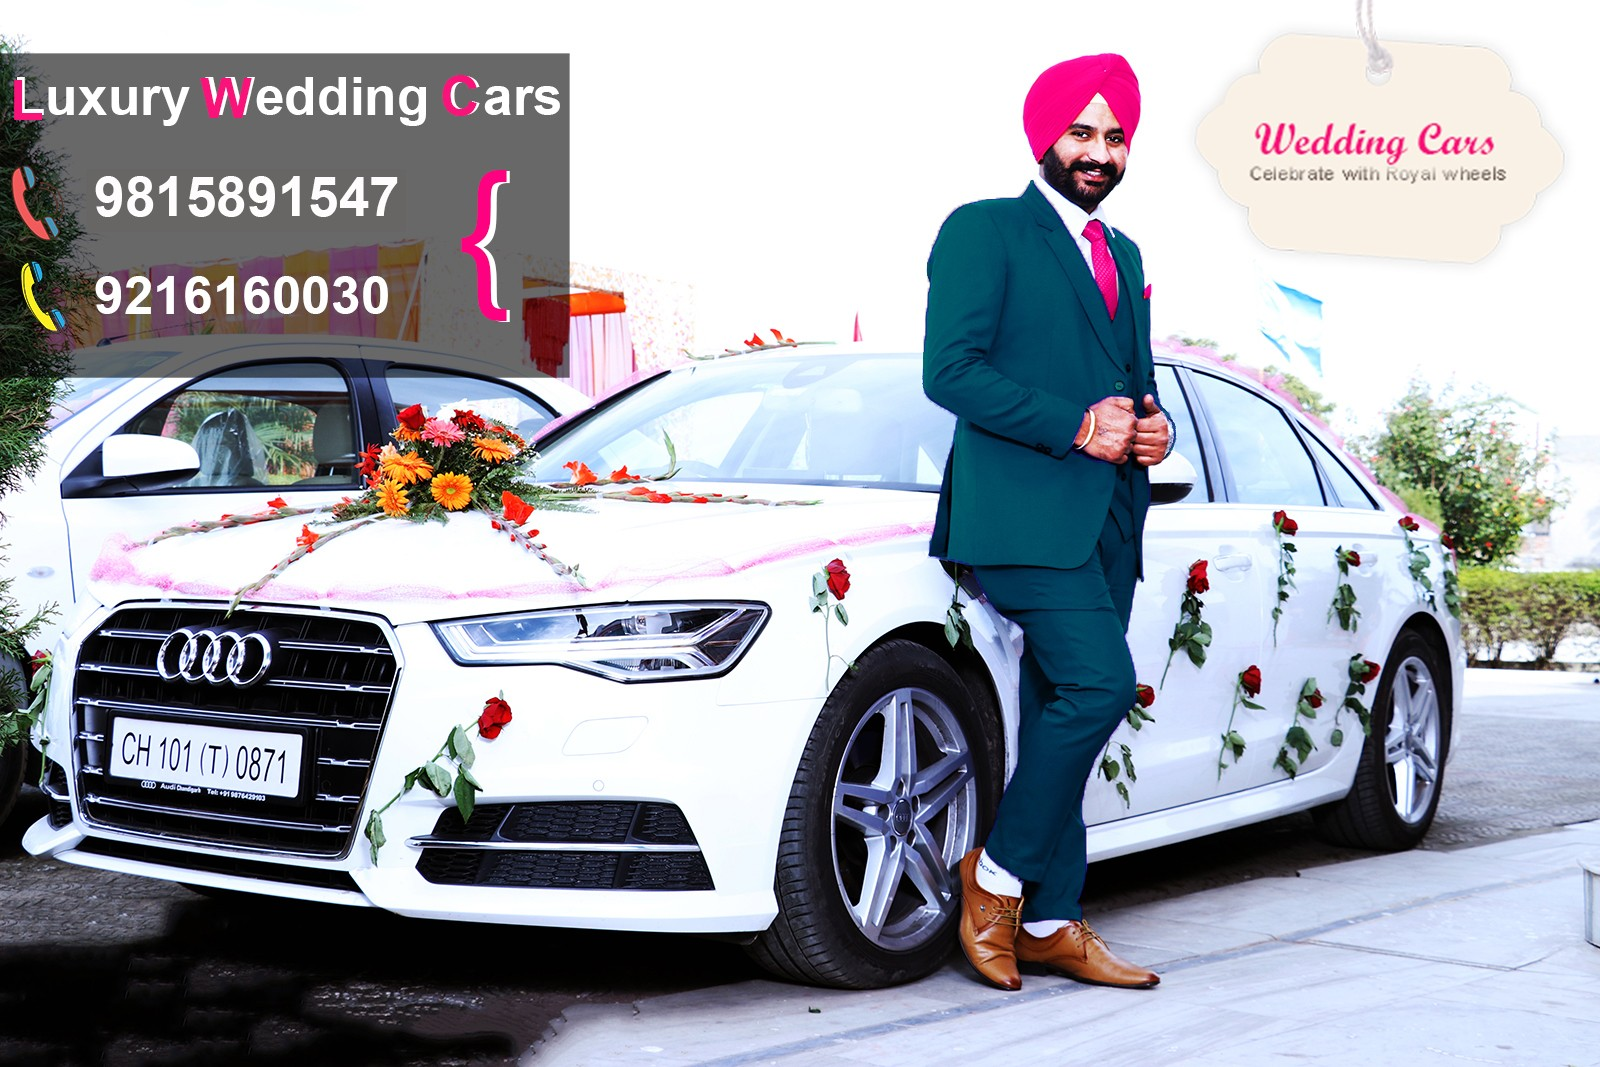 Audi car for wedding in Punjab, Audi hire for wedding, Wedding audi cars in punjab Audi car for wedding in Punjab, Audi hire for wedding, Weddind audi cars in punjab